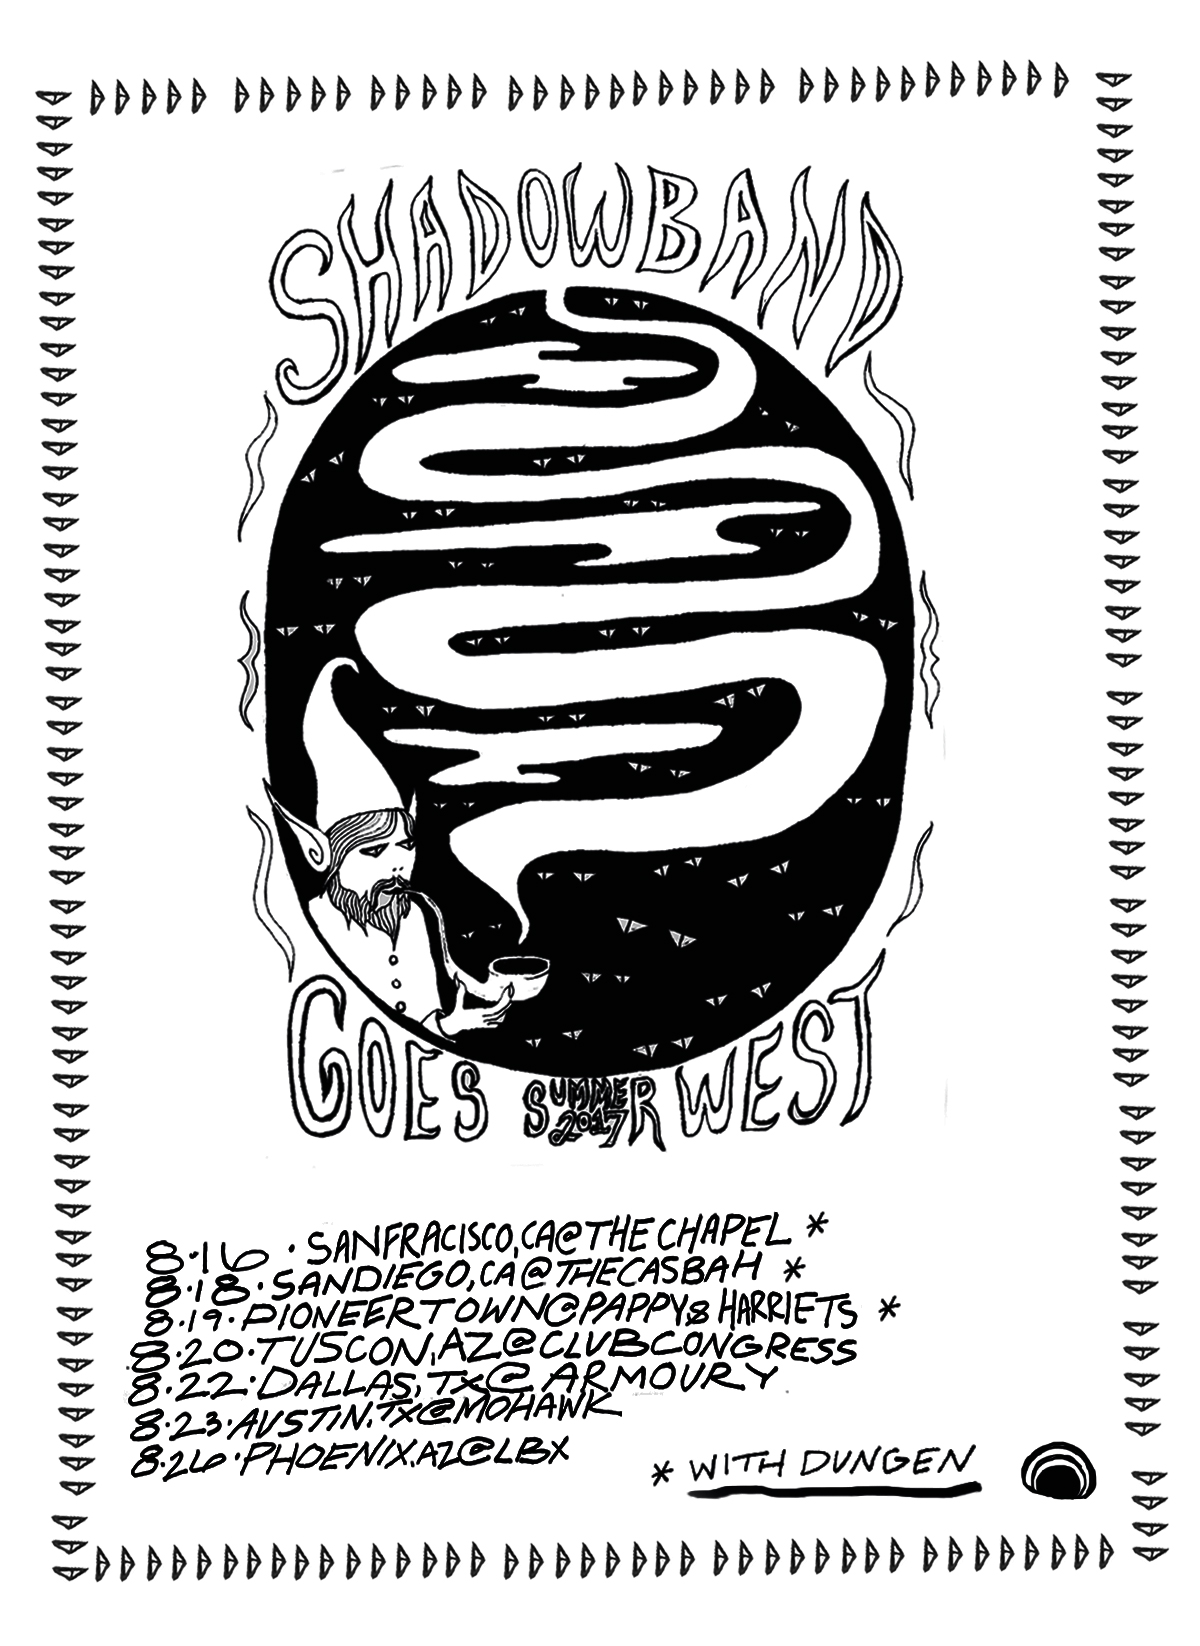 Shadow Band New August Tour Dates